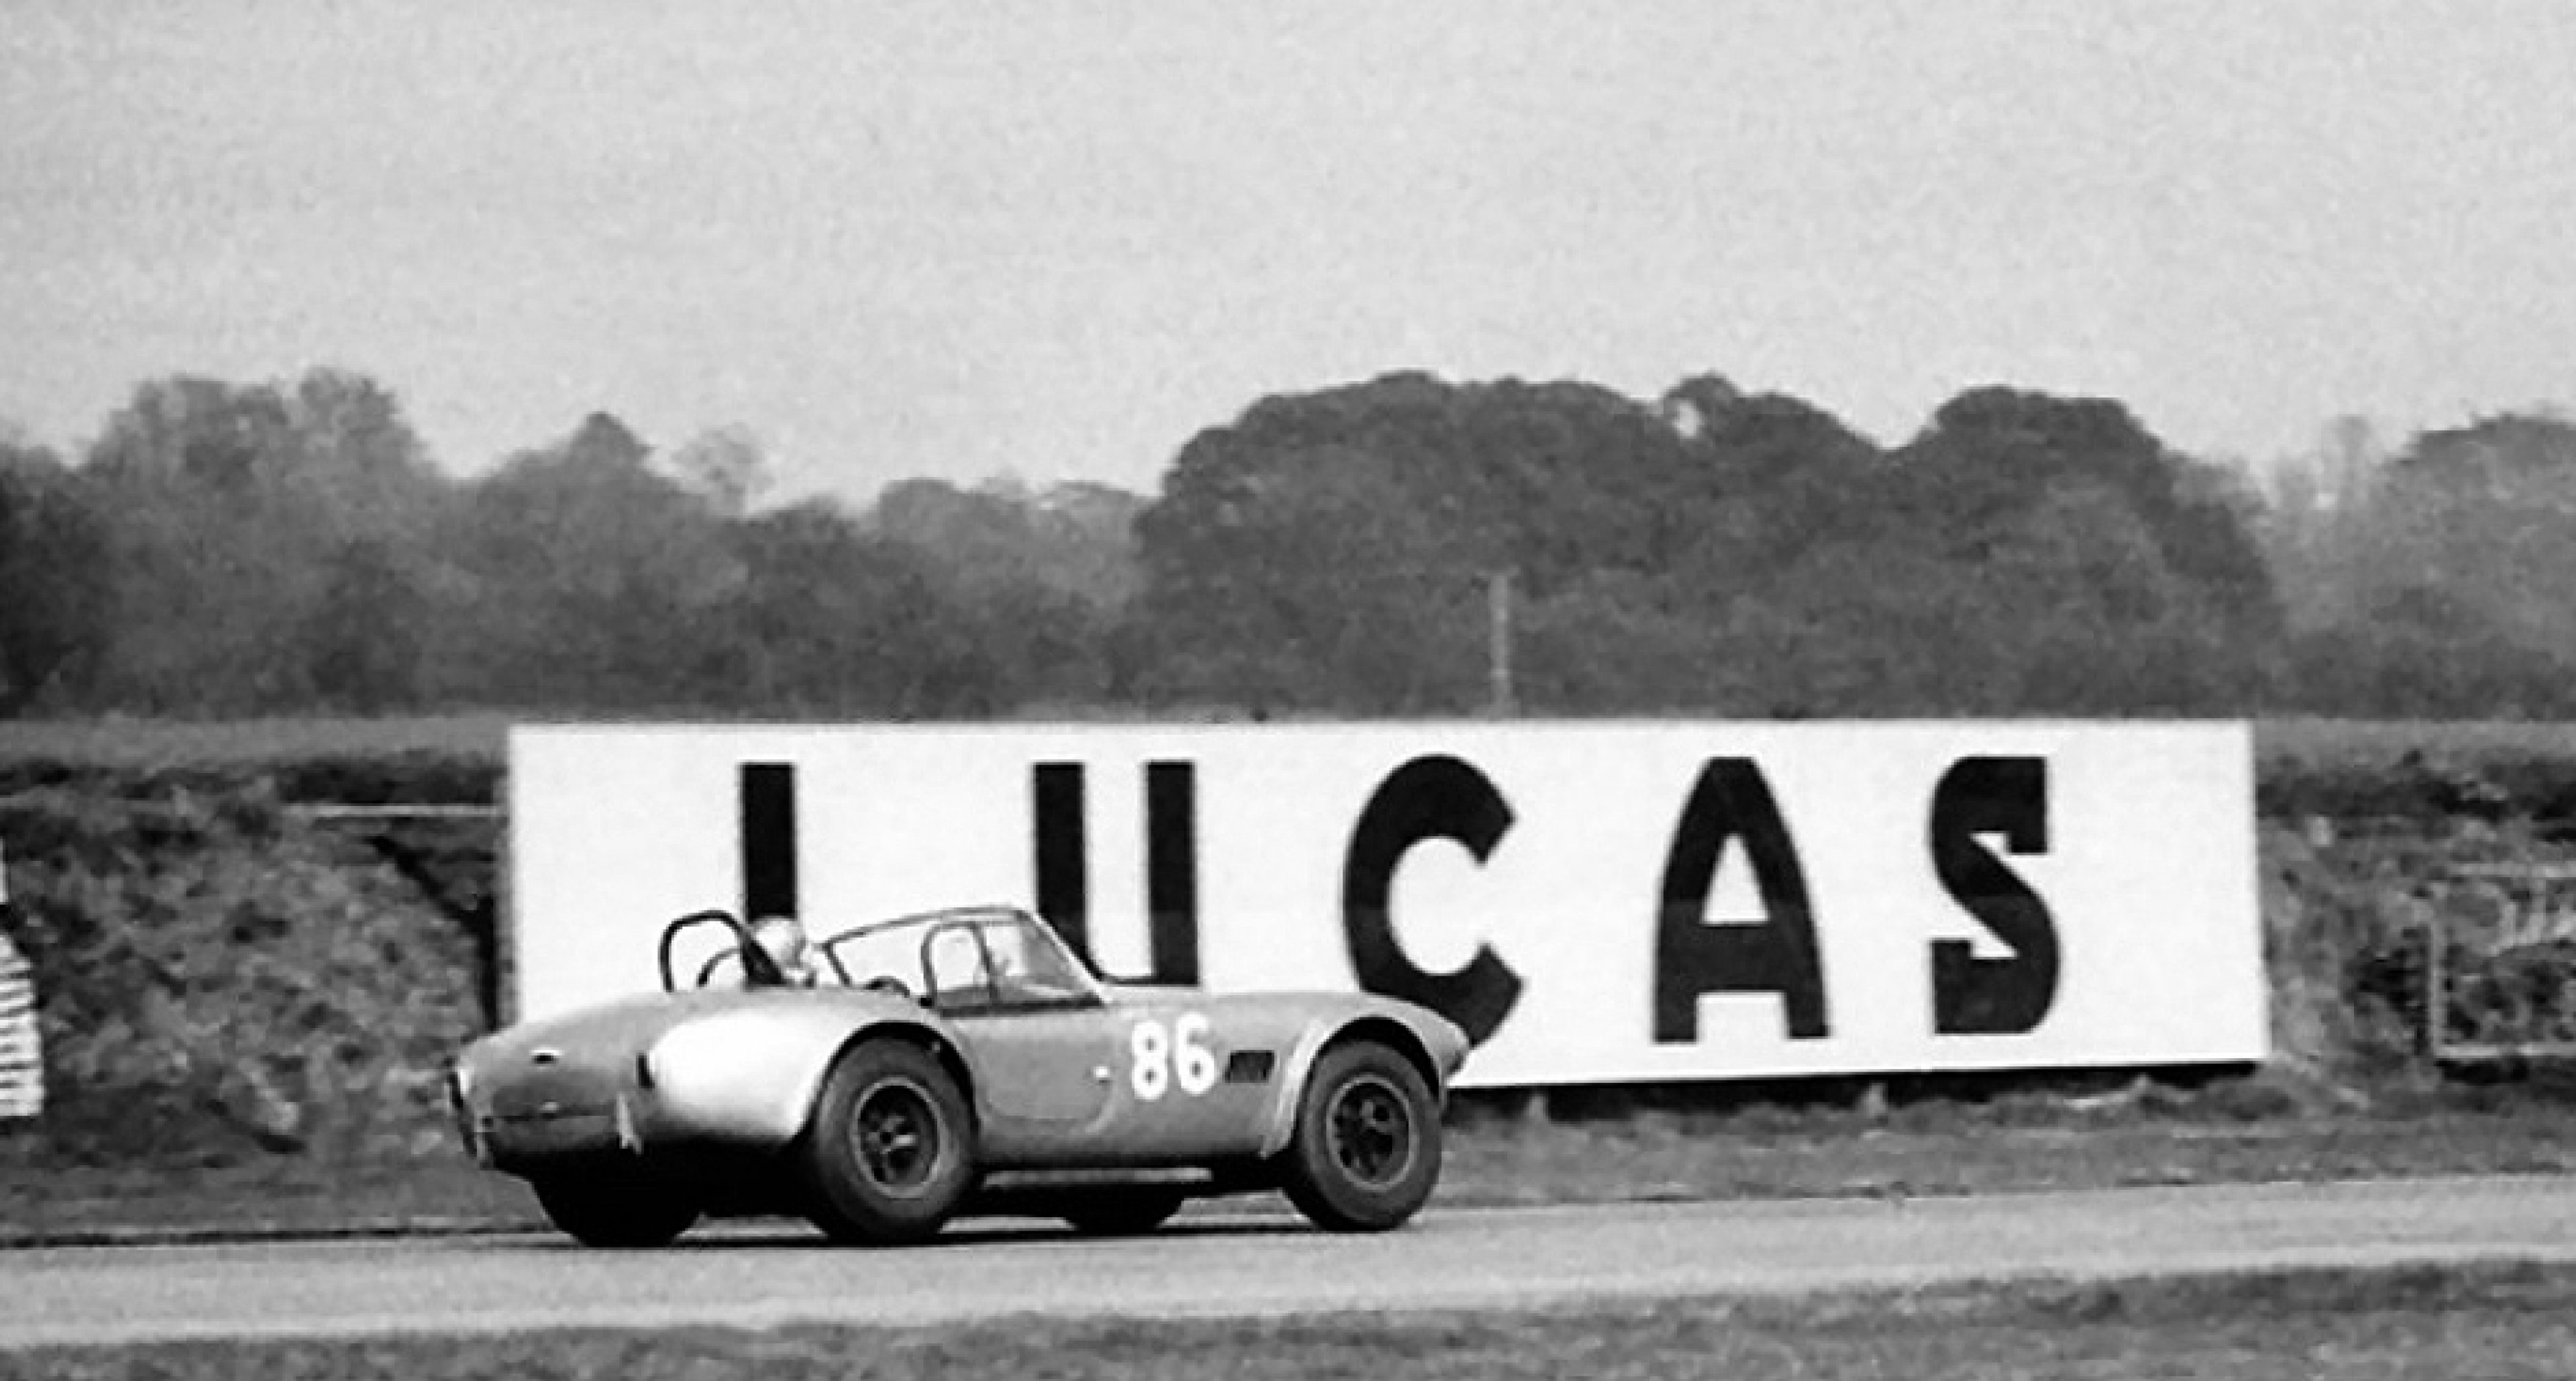 3 April, 1965: BARC Goodwood - J.Sparrow - Sports Car Race - 2nd / GT Race - 2nd